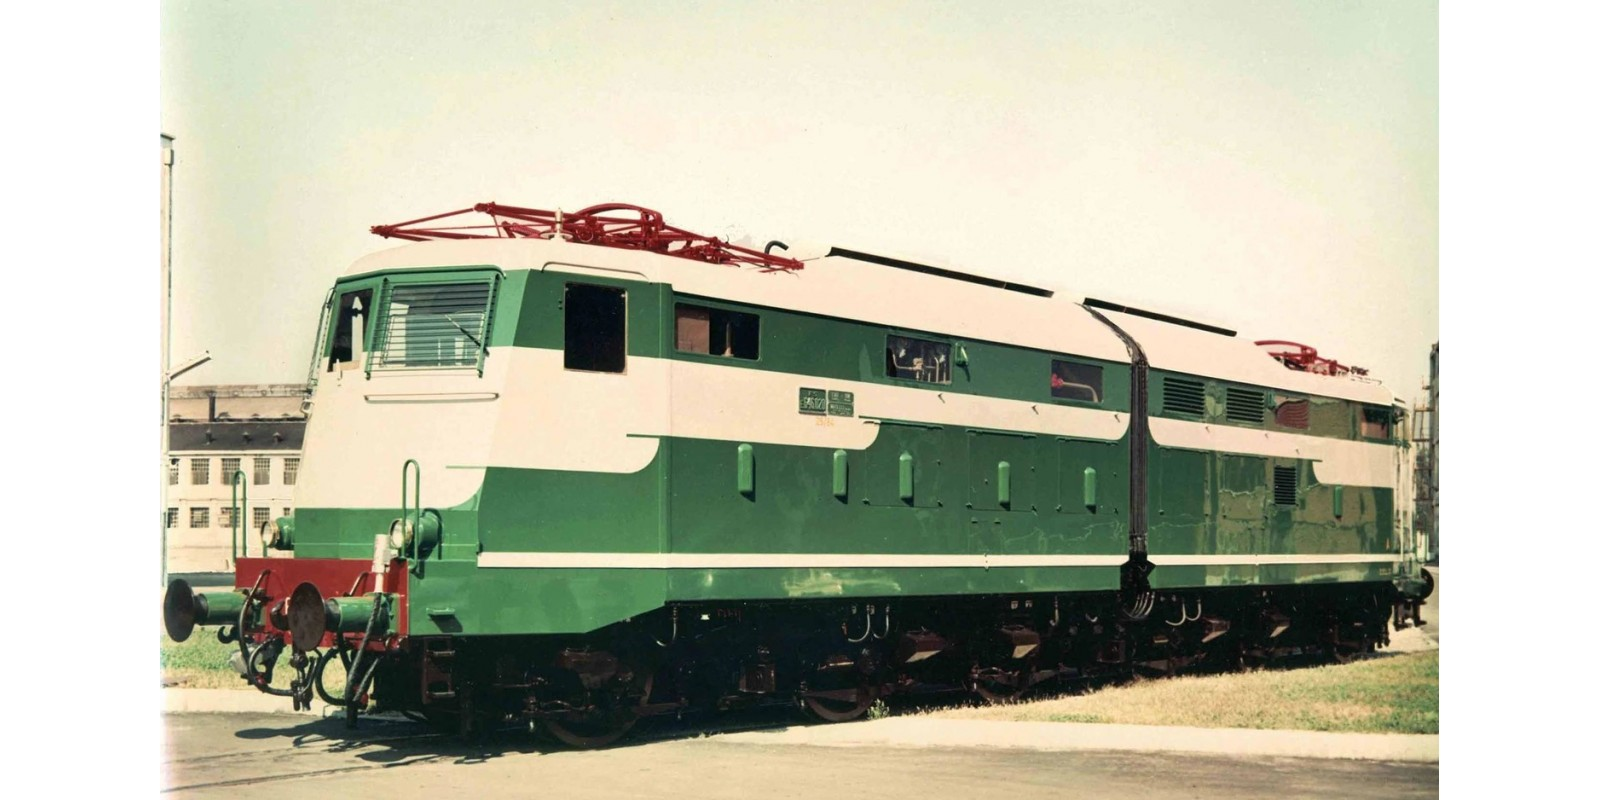 RI2740S FS, electric locomotive E 646 019 first series, verde magnolia / grigio nebbia livery, pantographs type 42LR, in original status, period III-IV, with DCC-sounddecoder